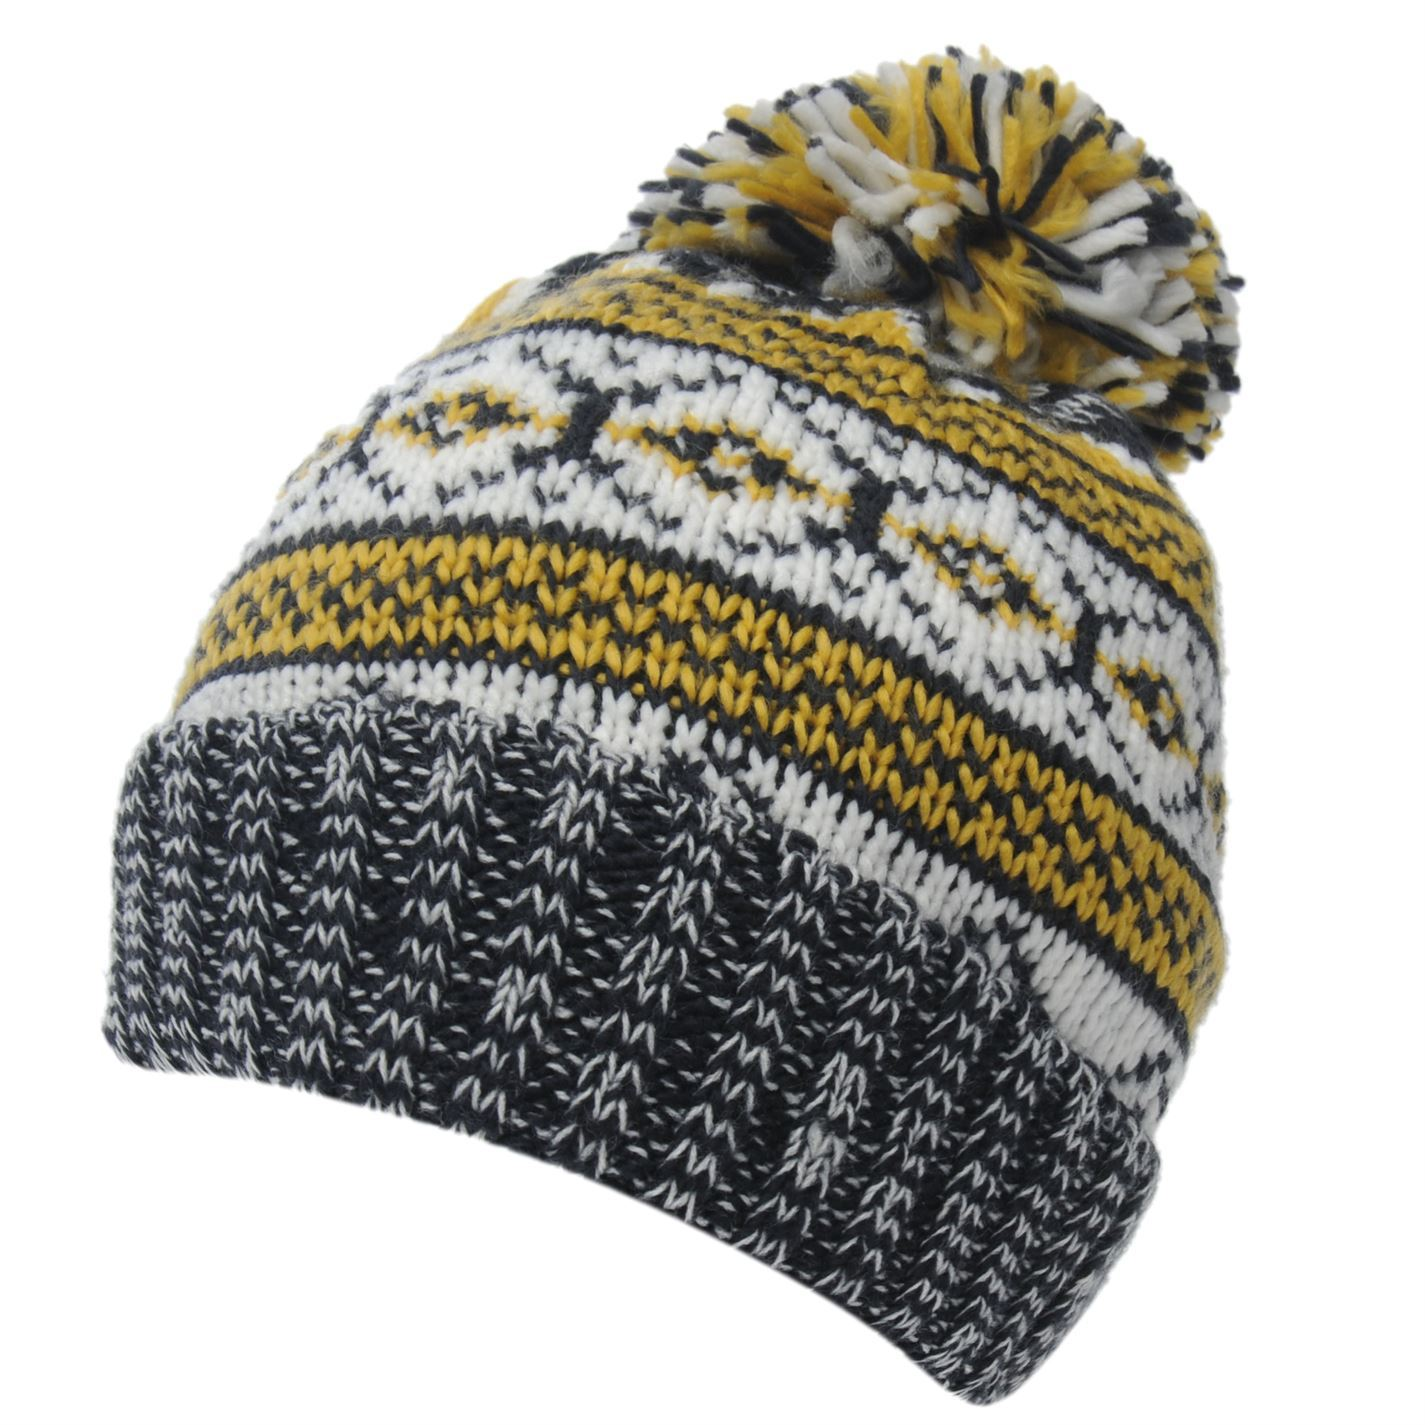 41cb85ba463 Crafted Fairisle Pom Pom Beanie Child Boys Keep snug outside on those  chillier days with this Crafted Fairisle Pom Pom Beanie - made up of a  knitted ...